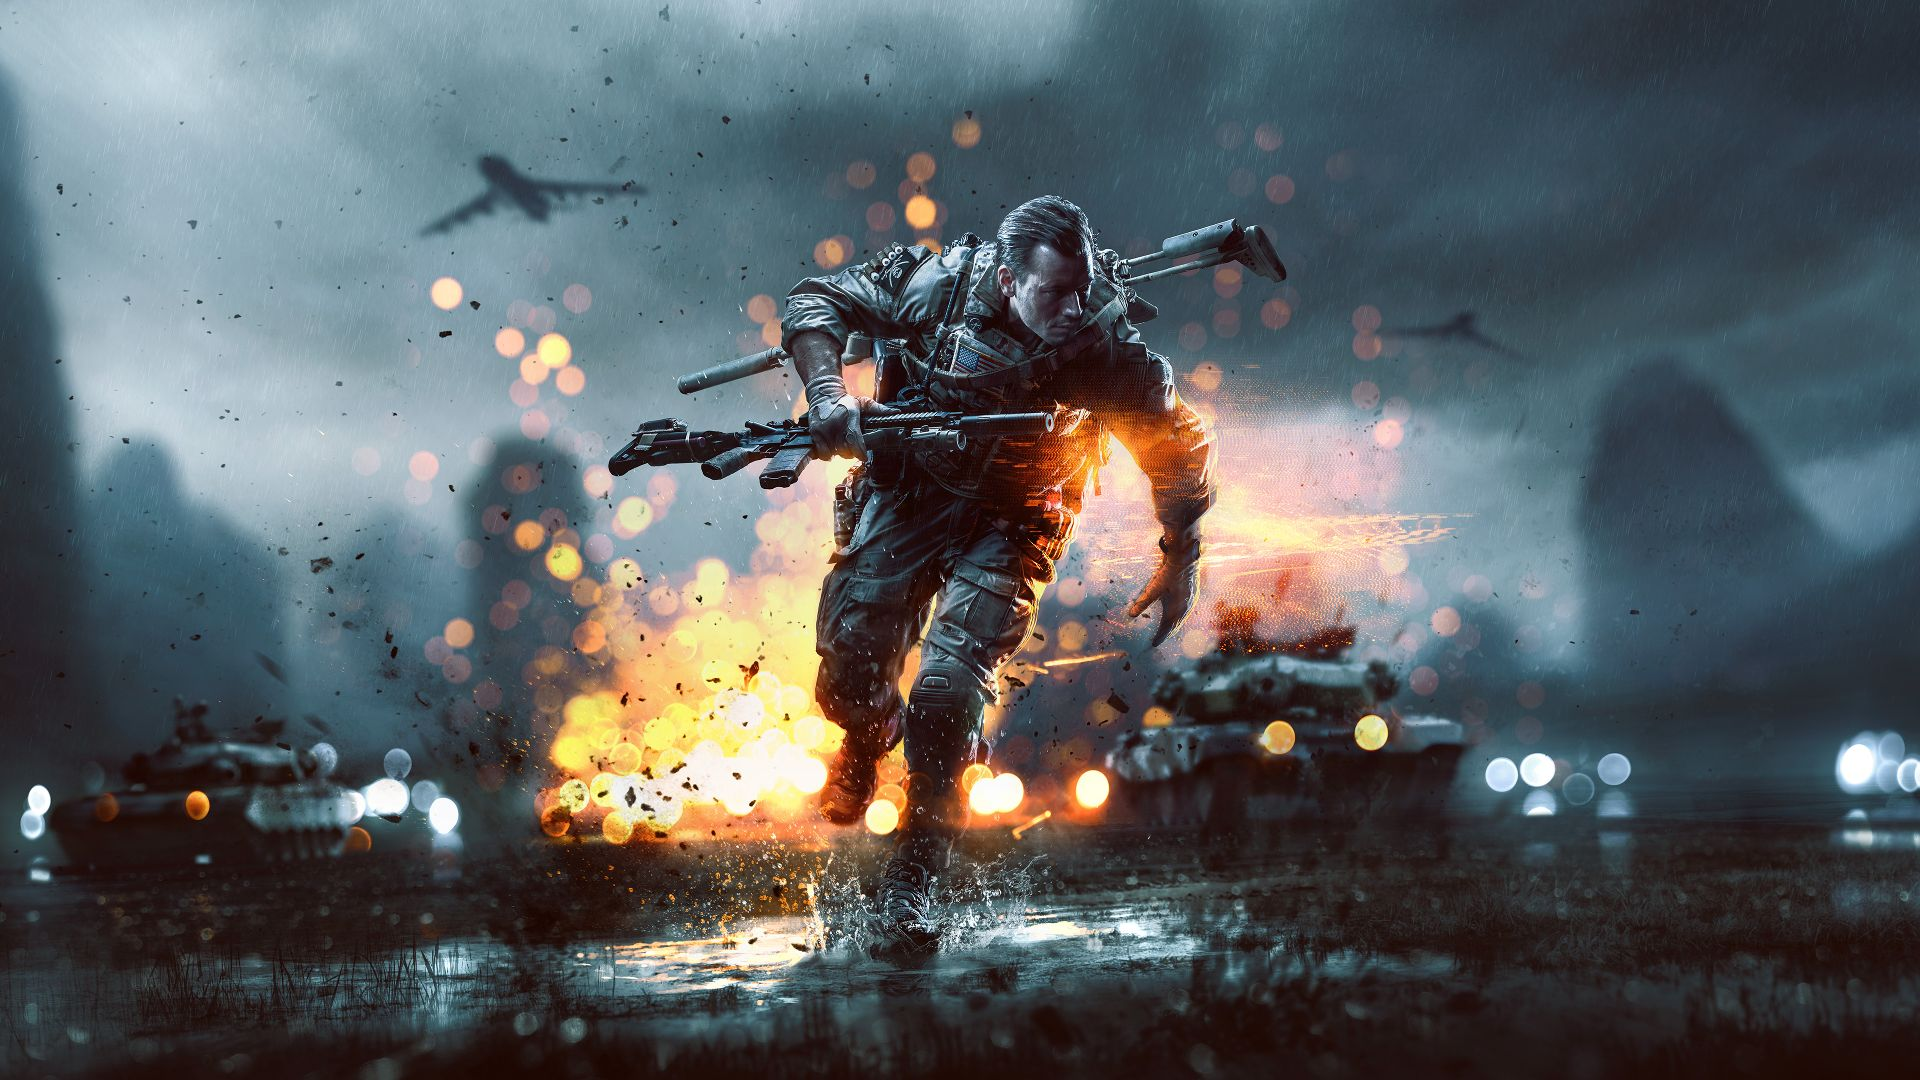 Download Wallpaper 1280x1280 Battlefield 4 Game Ea: Battlefield 4™ China Rising For PC